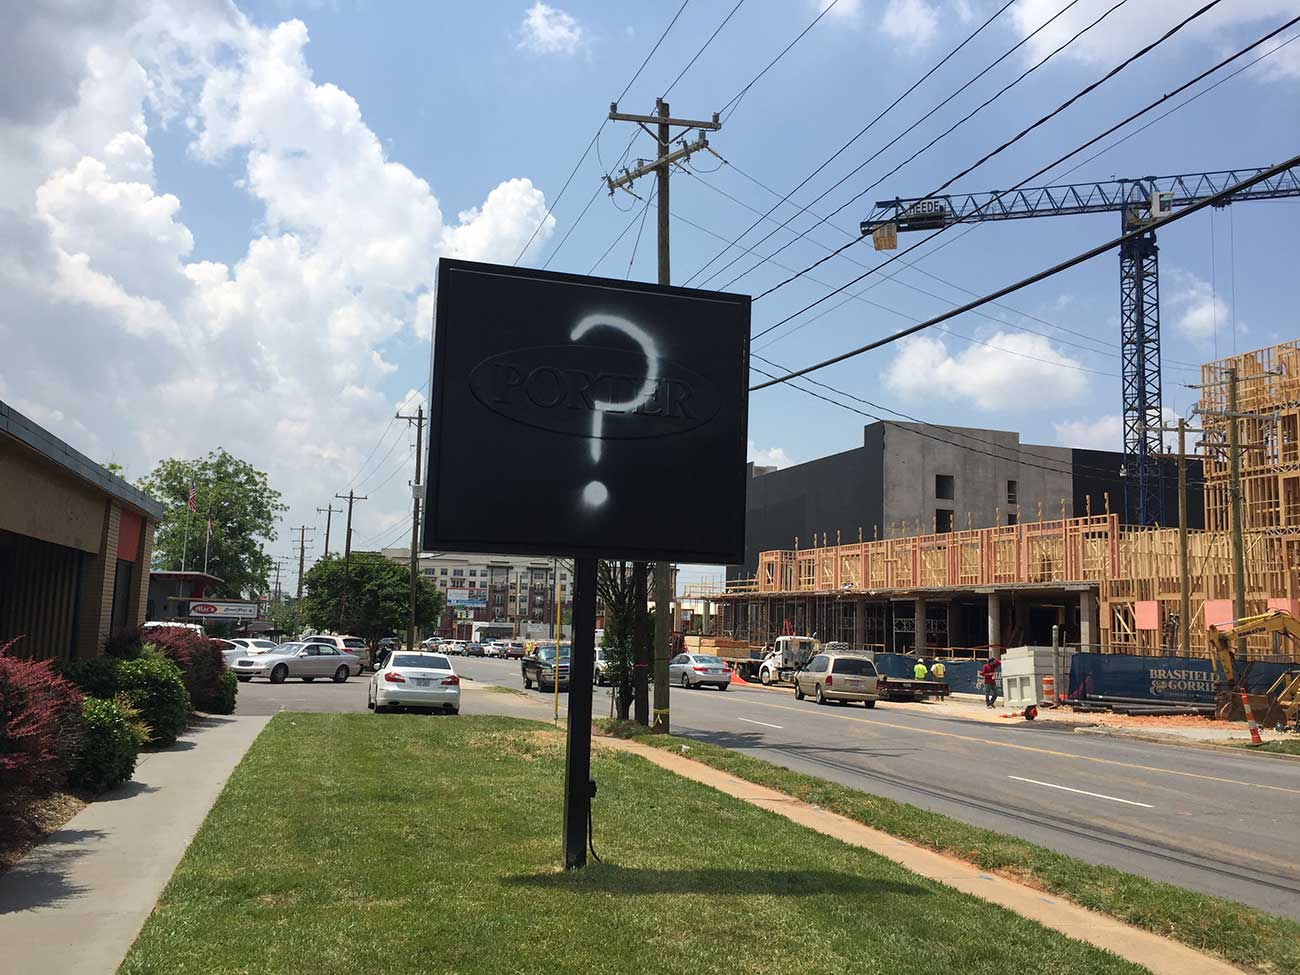 The Mac's people are behind that question mark sign on South Boulevard